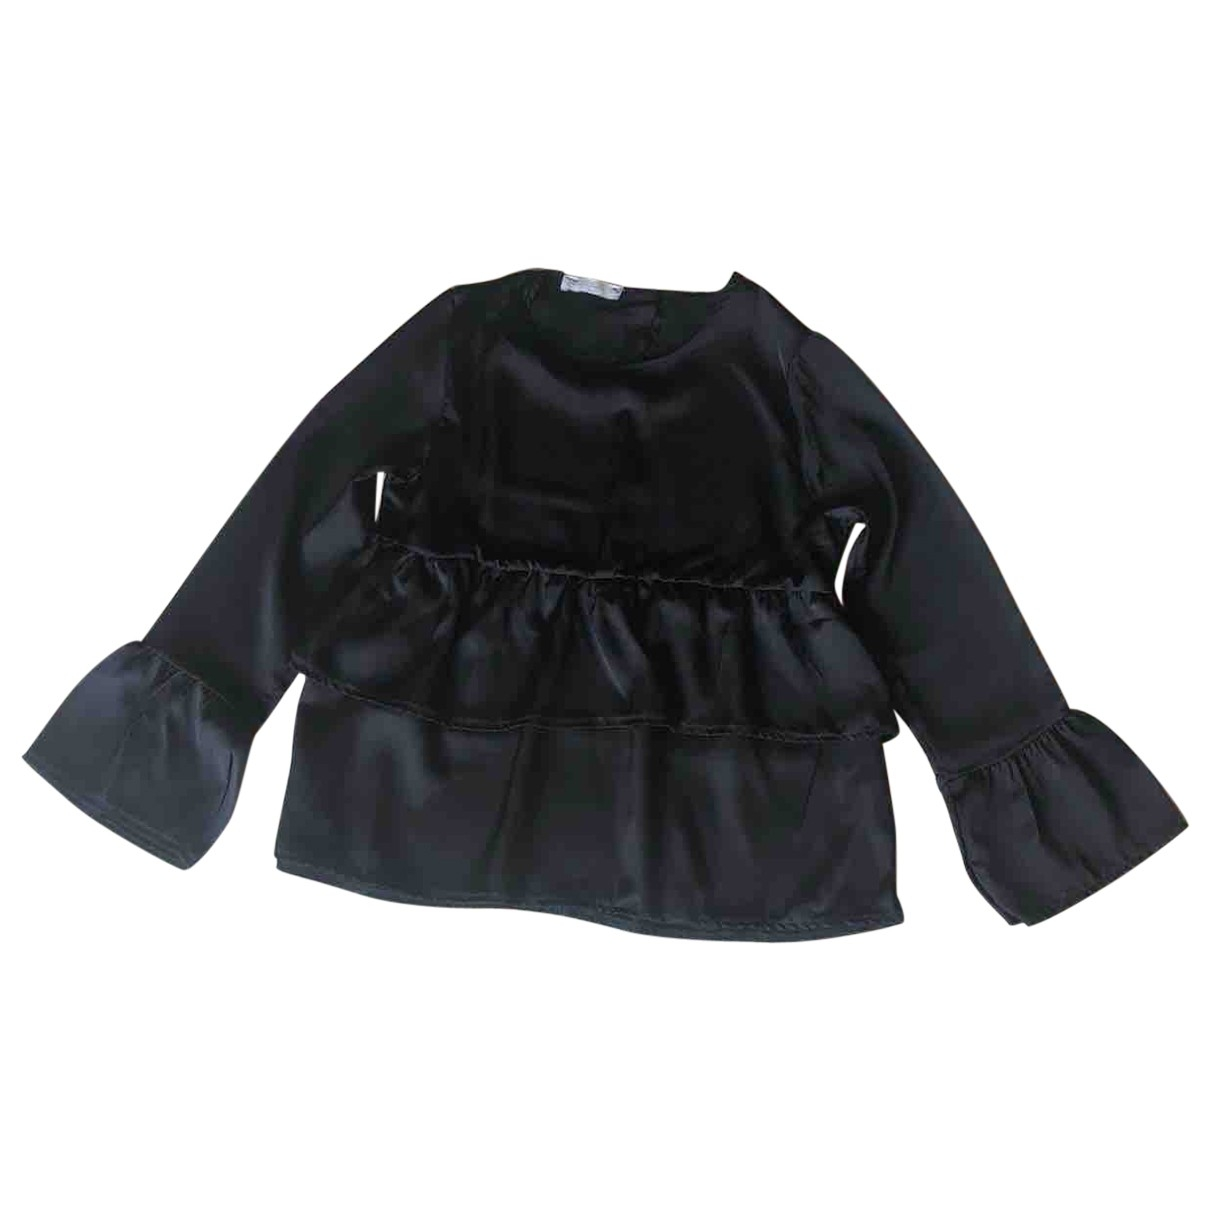 Non Signé / Unsigned \N Black  top for Women One Size International